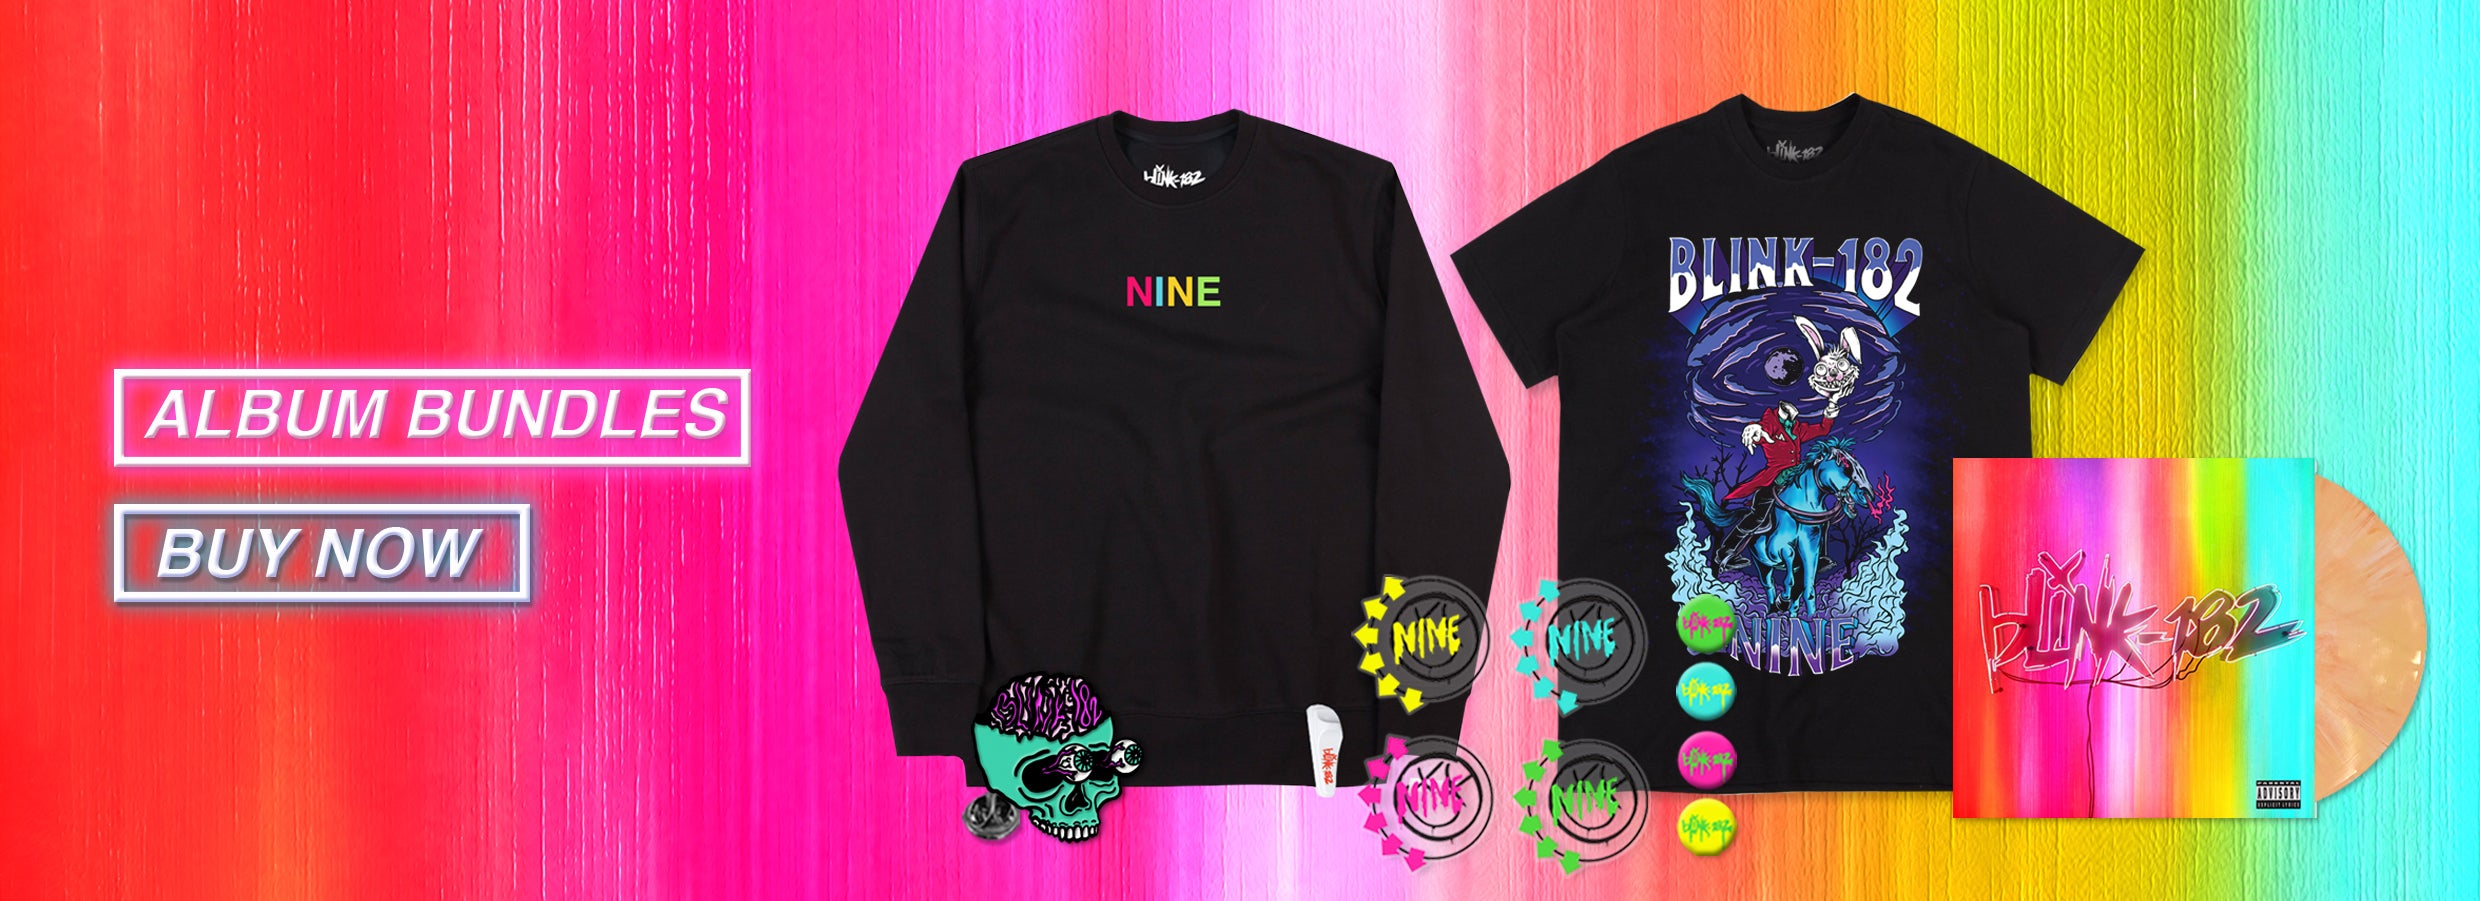 6a4b42b9 Official Online Store | Blink-182 US